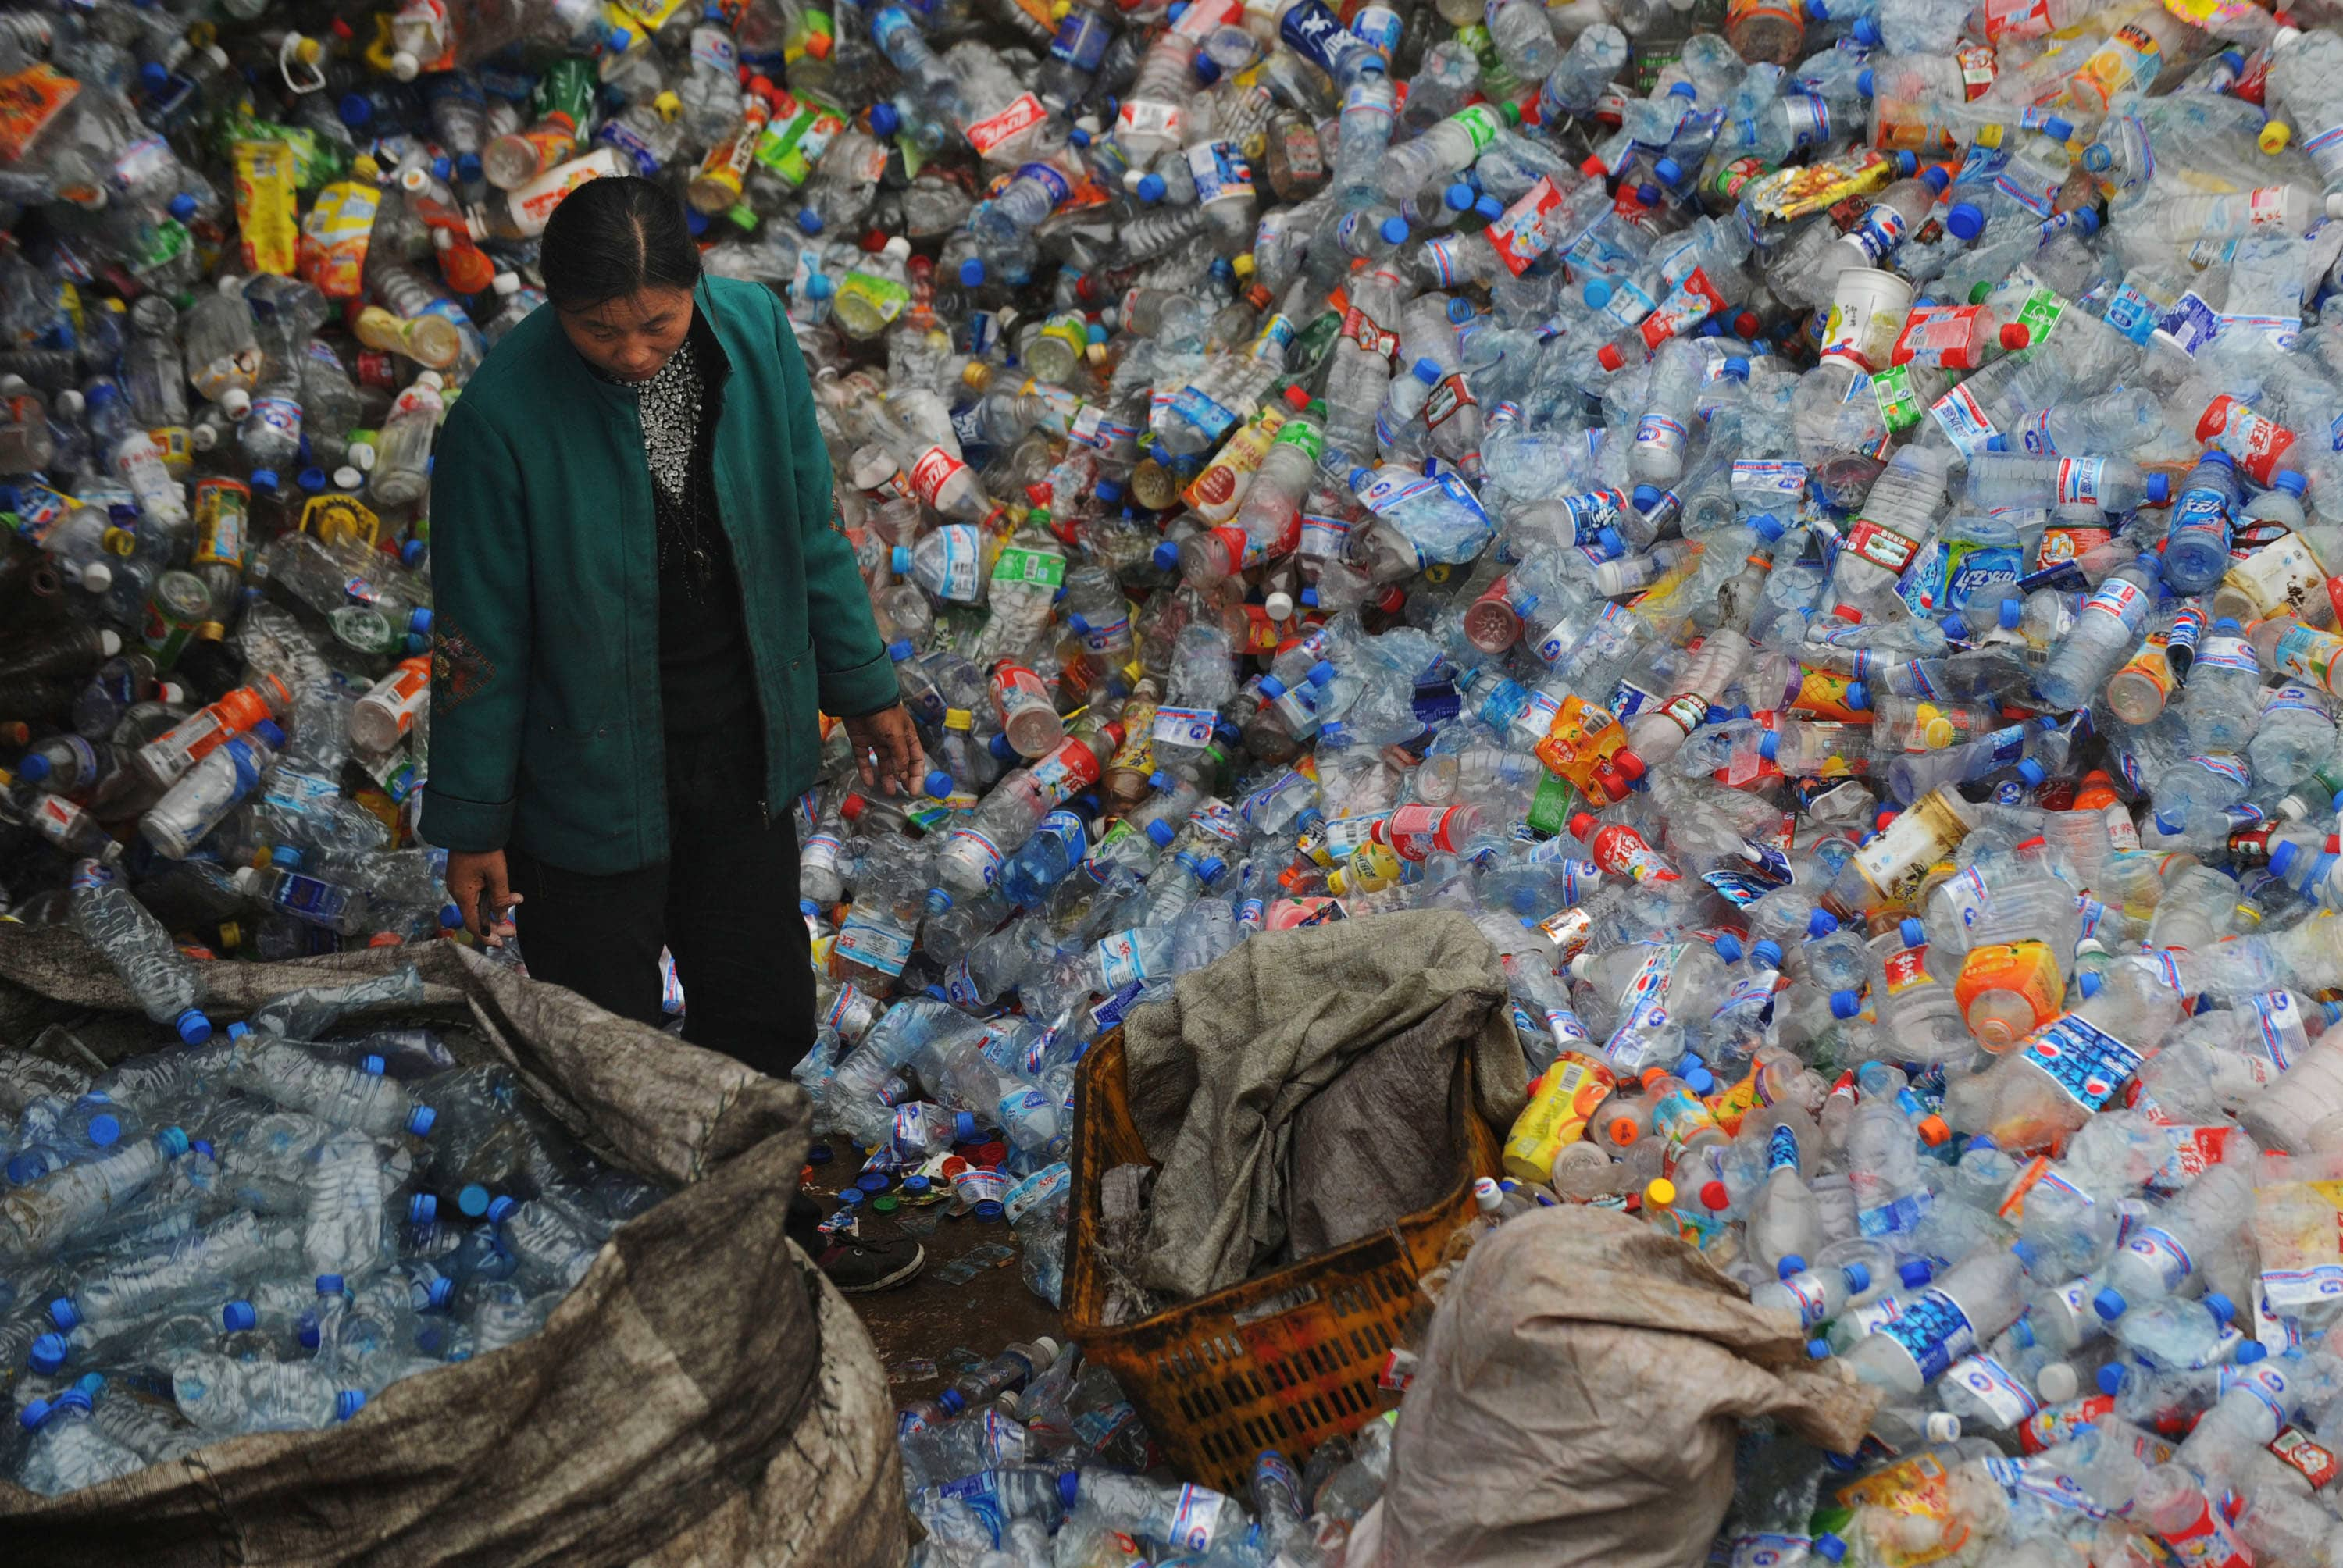 Climate Change China Bans Import Of Foreign Waste To Stop